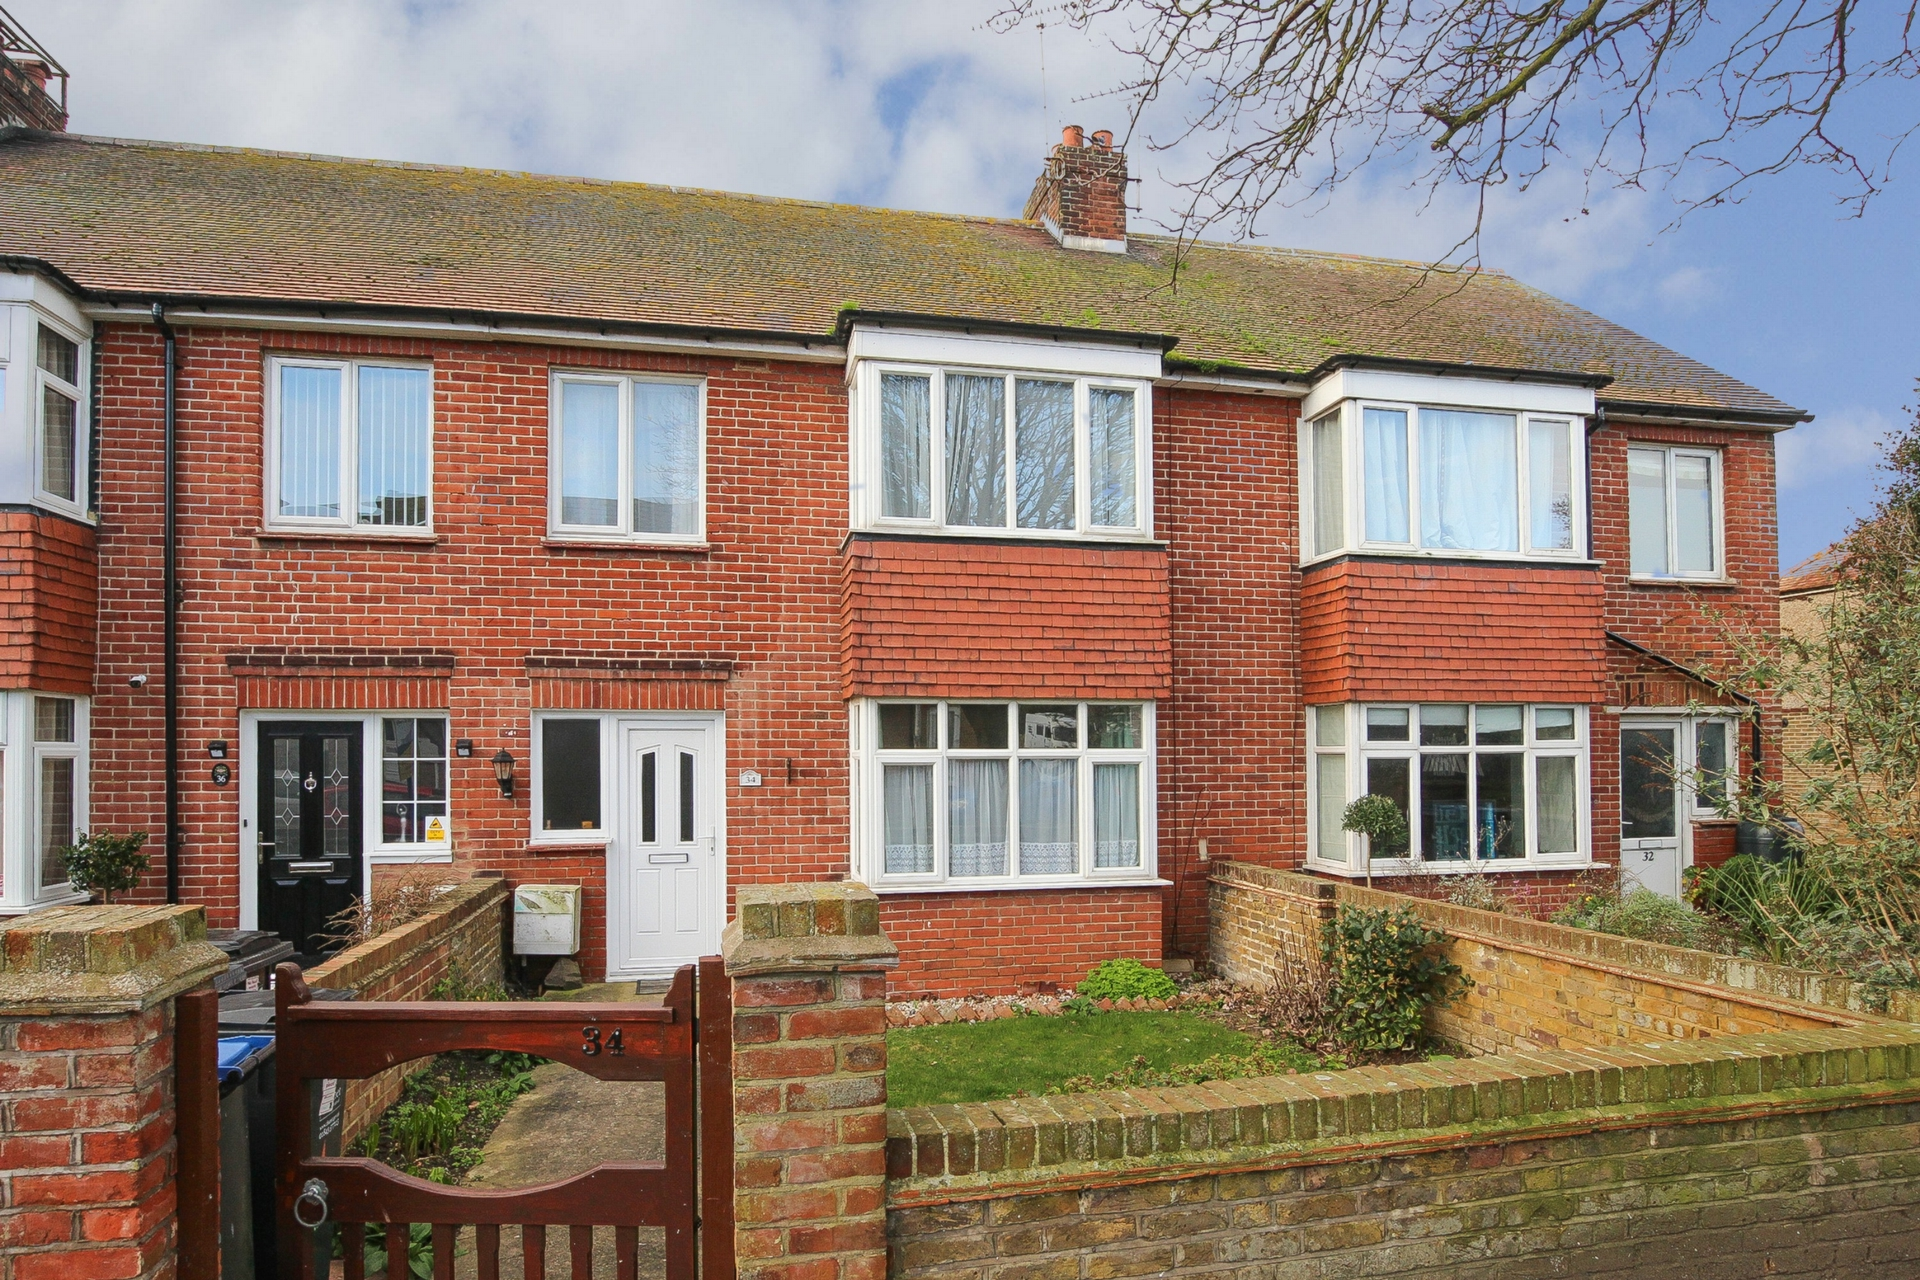 3 bed terraced house for sale in Ethelbert Road, Birchington, CT7, CT7